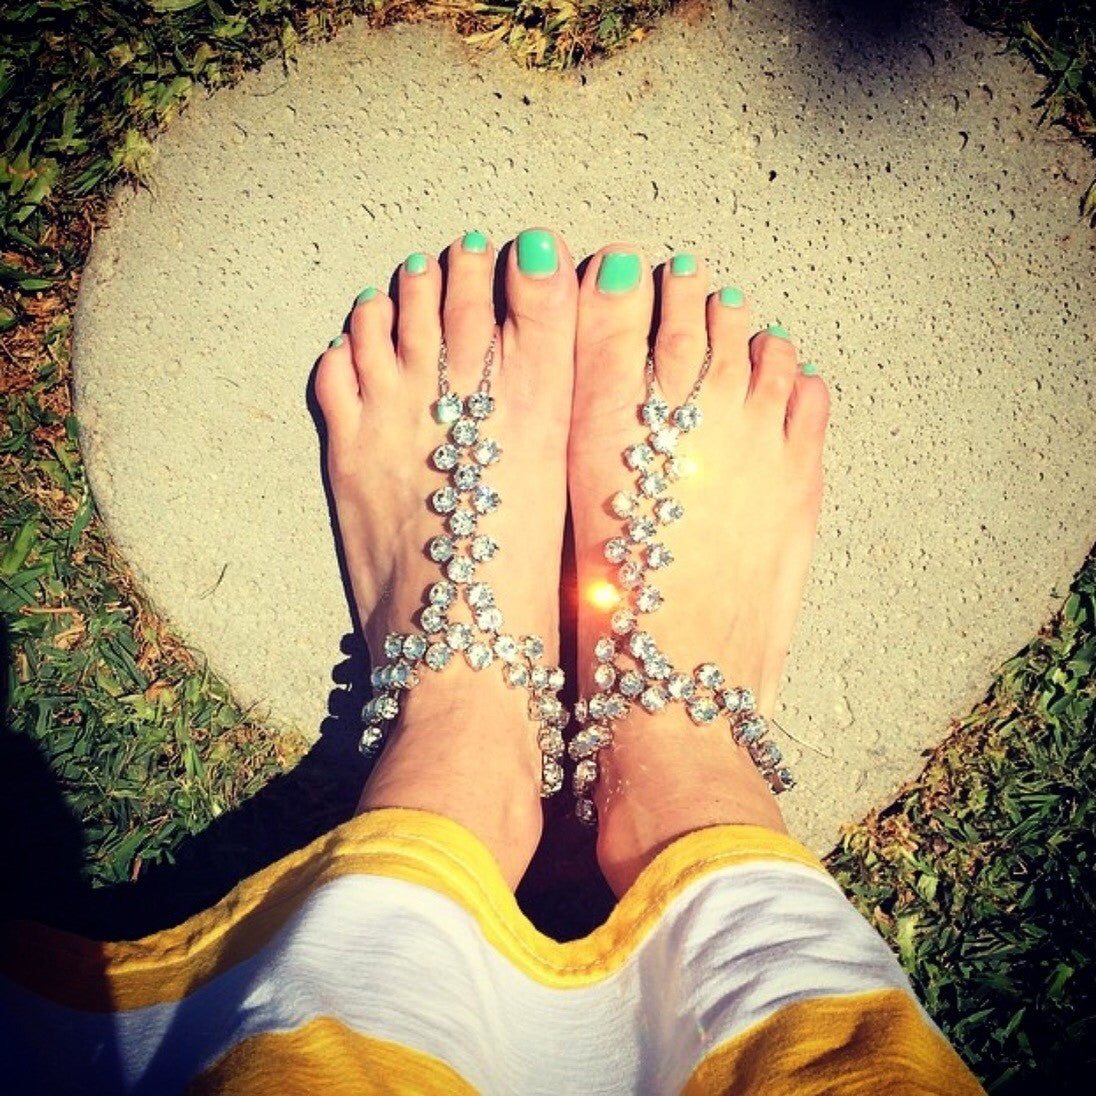 The Rachelle Foot Jewelry